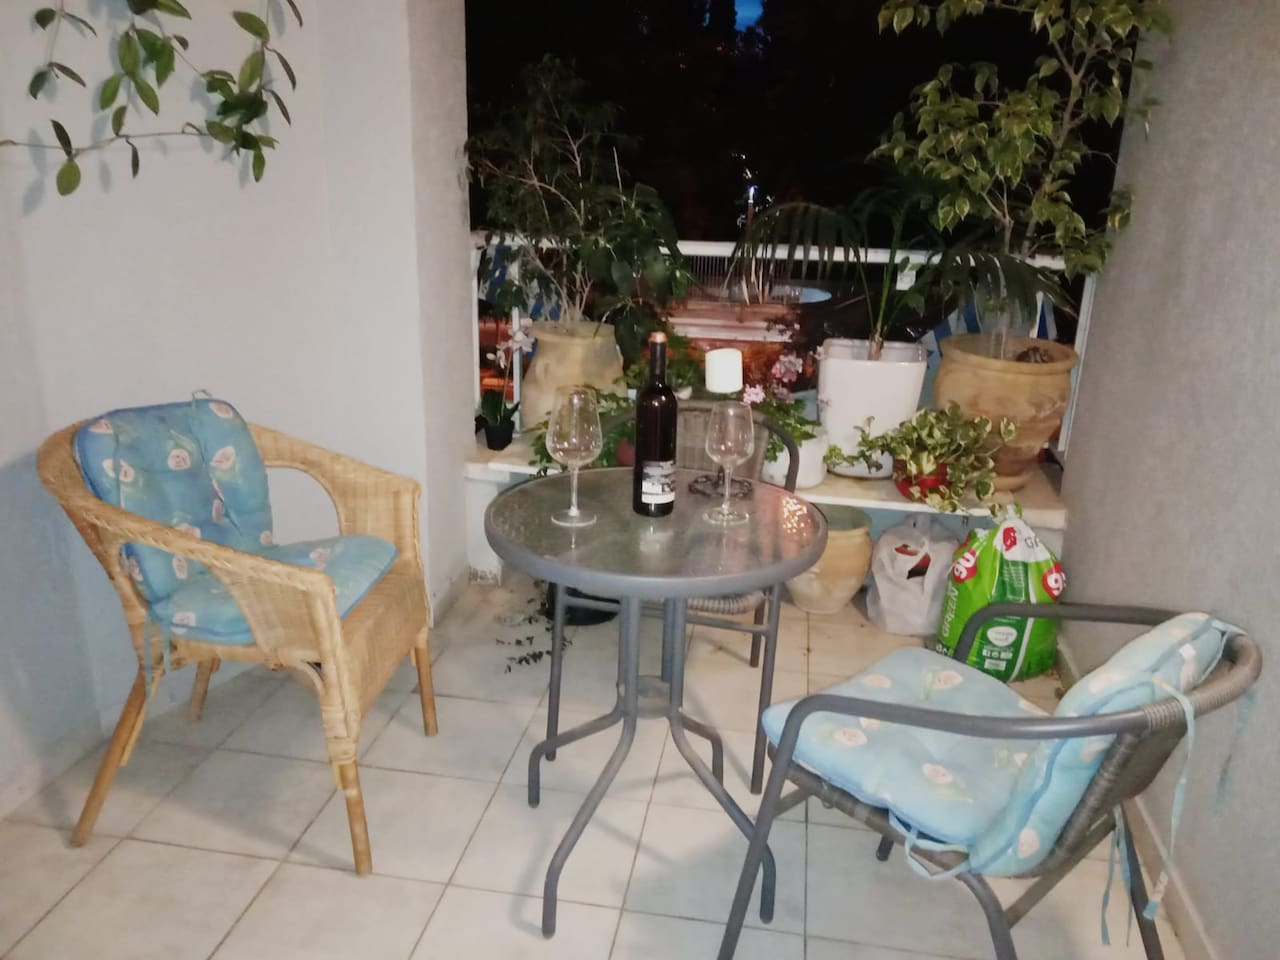 Enjoy the balcony on a warm evening with a glass of wine or coffee.